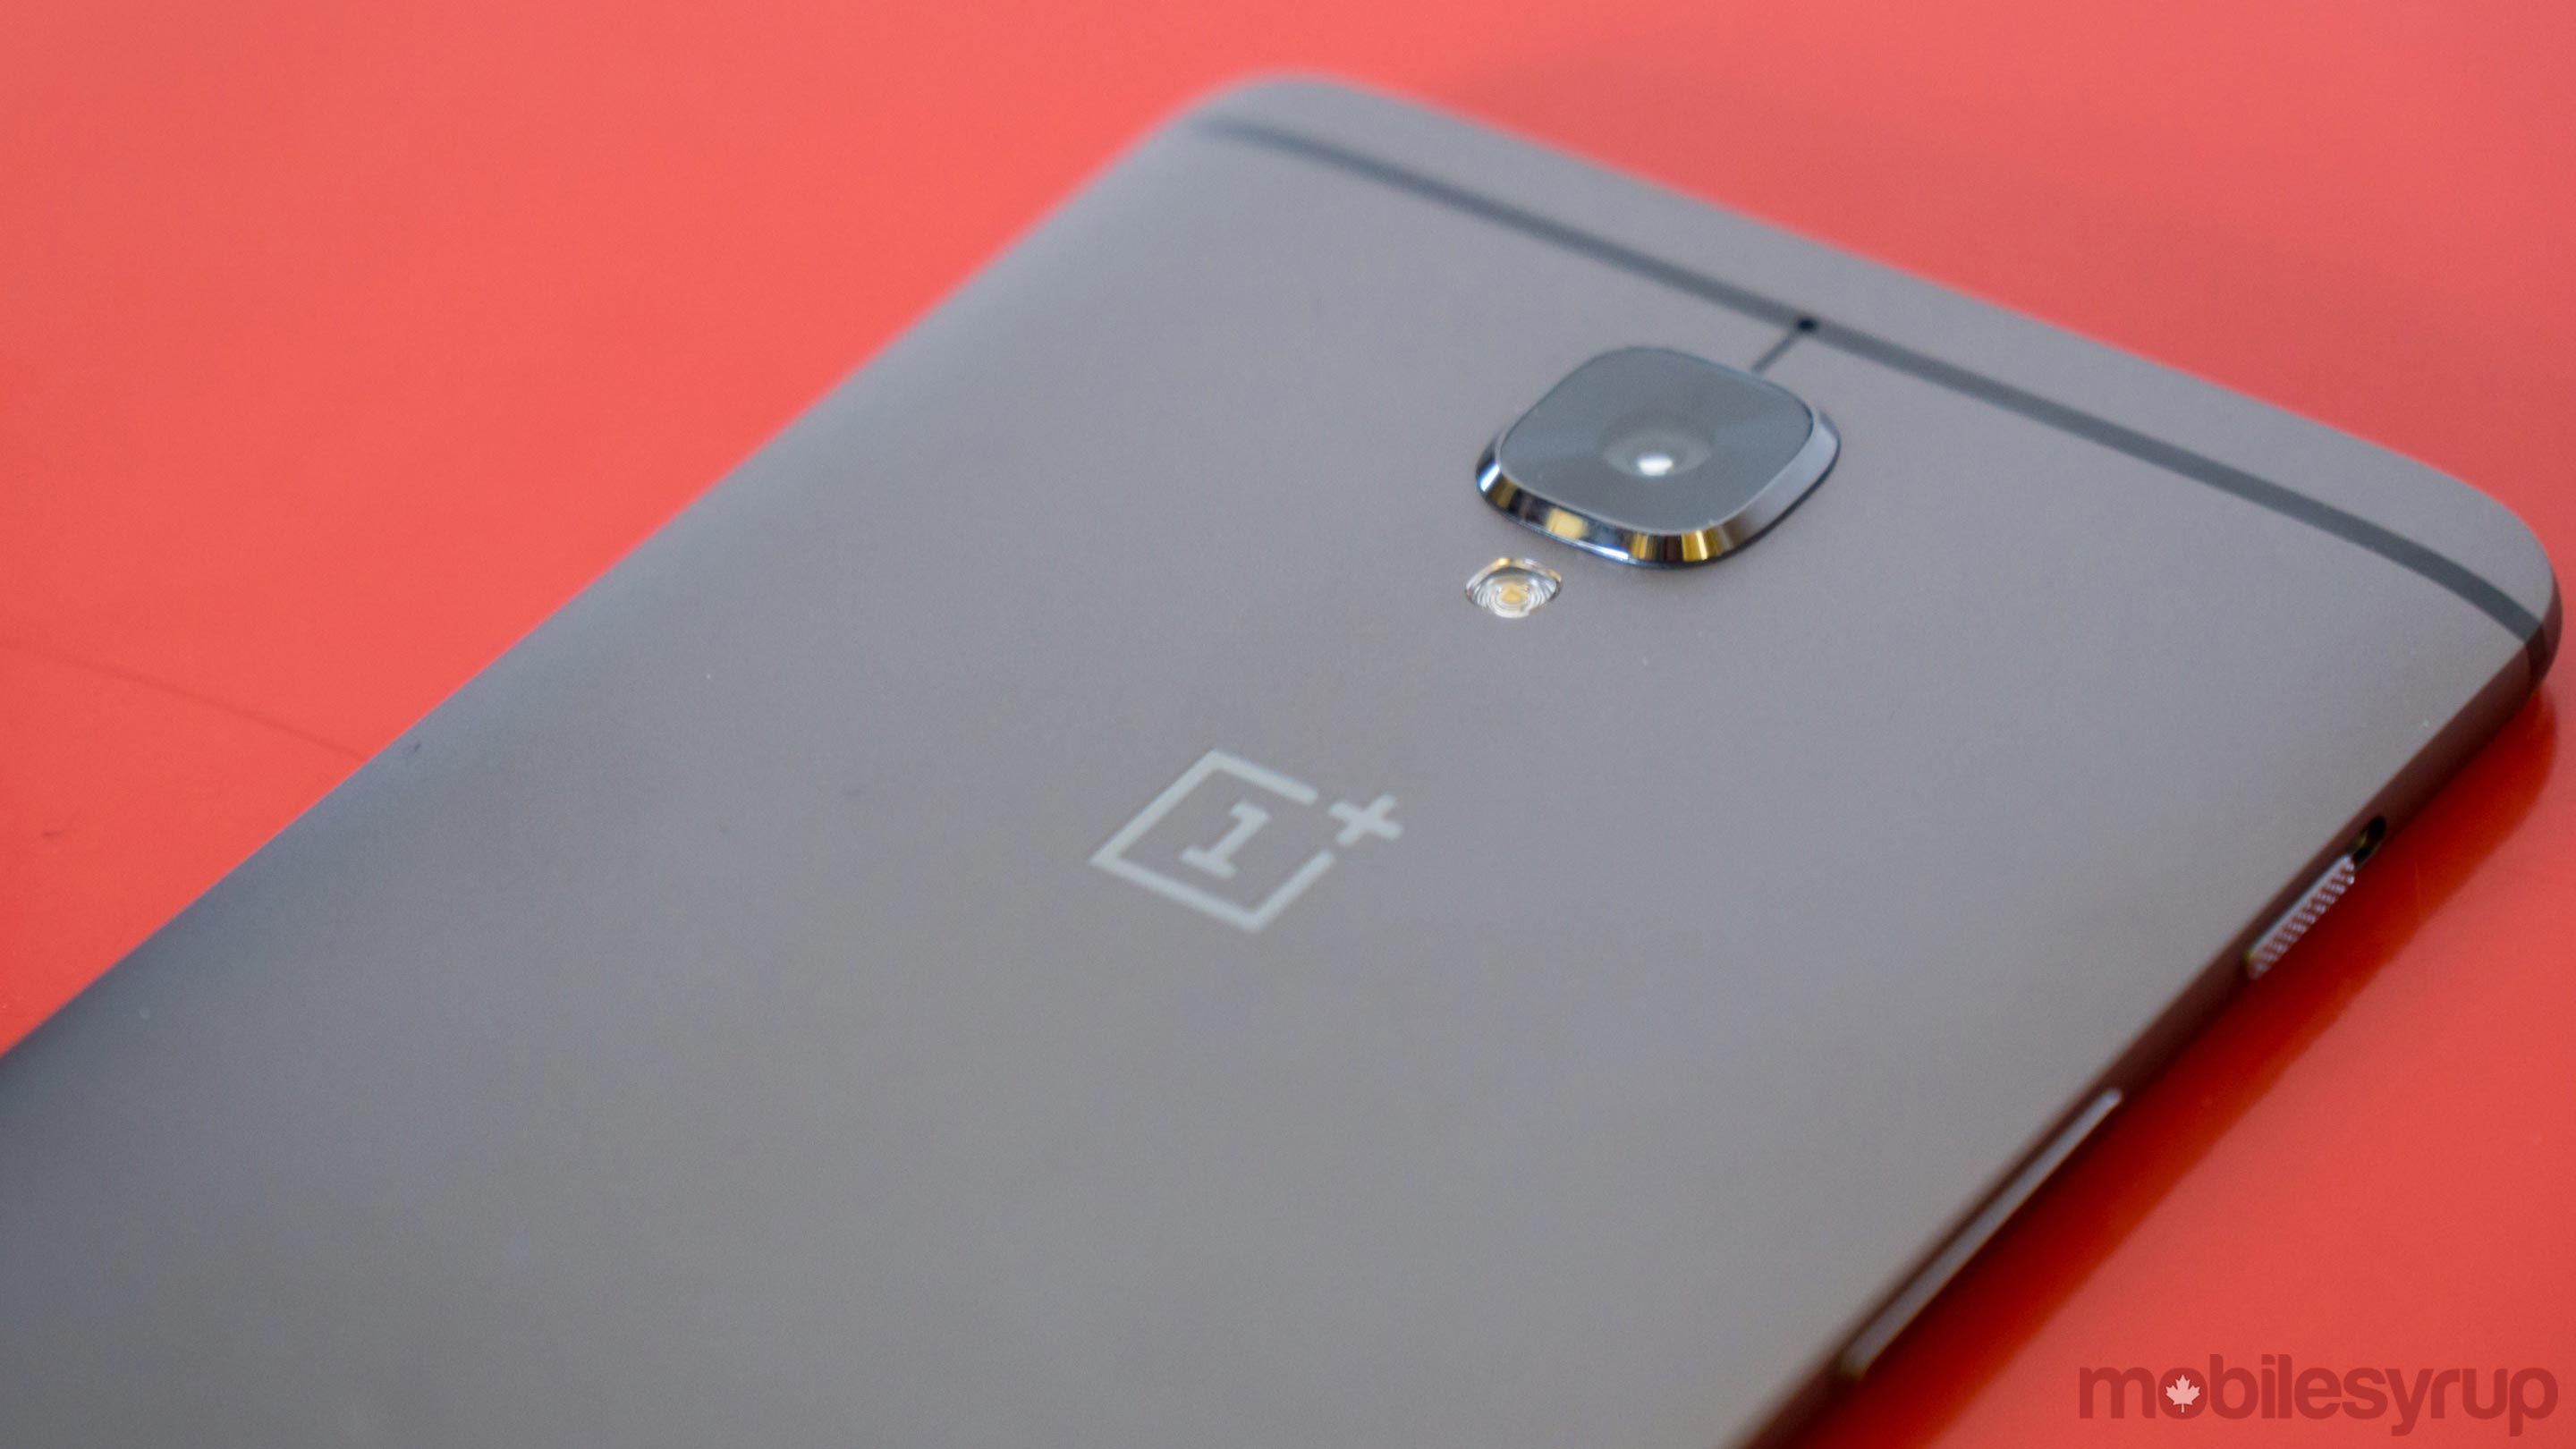 oneplus 3t - oneplus google assistant